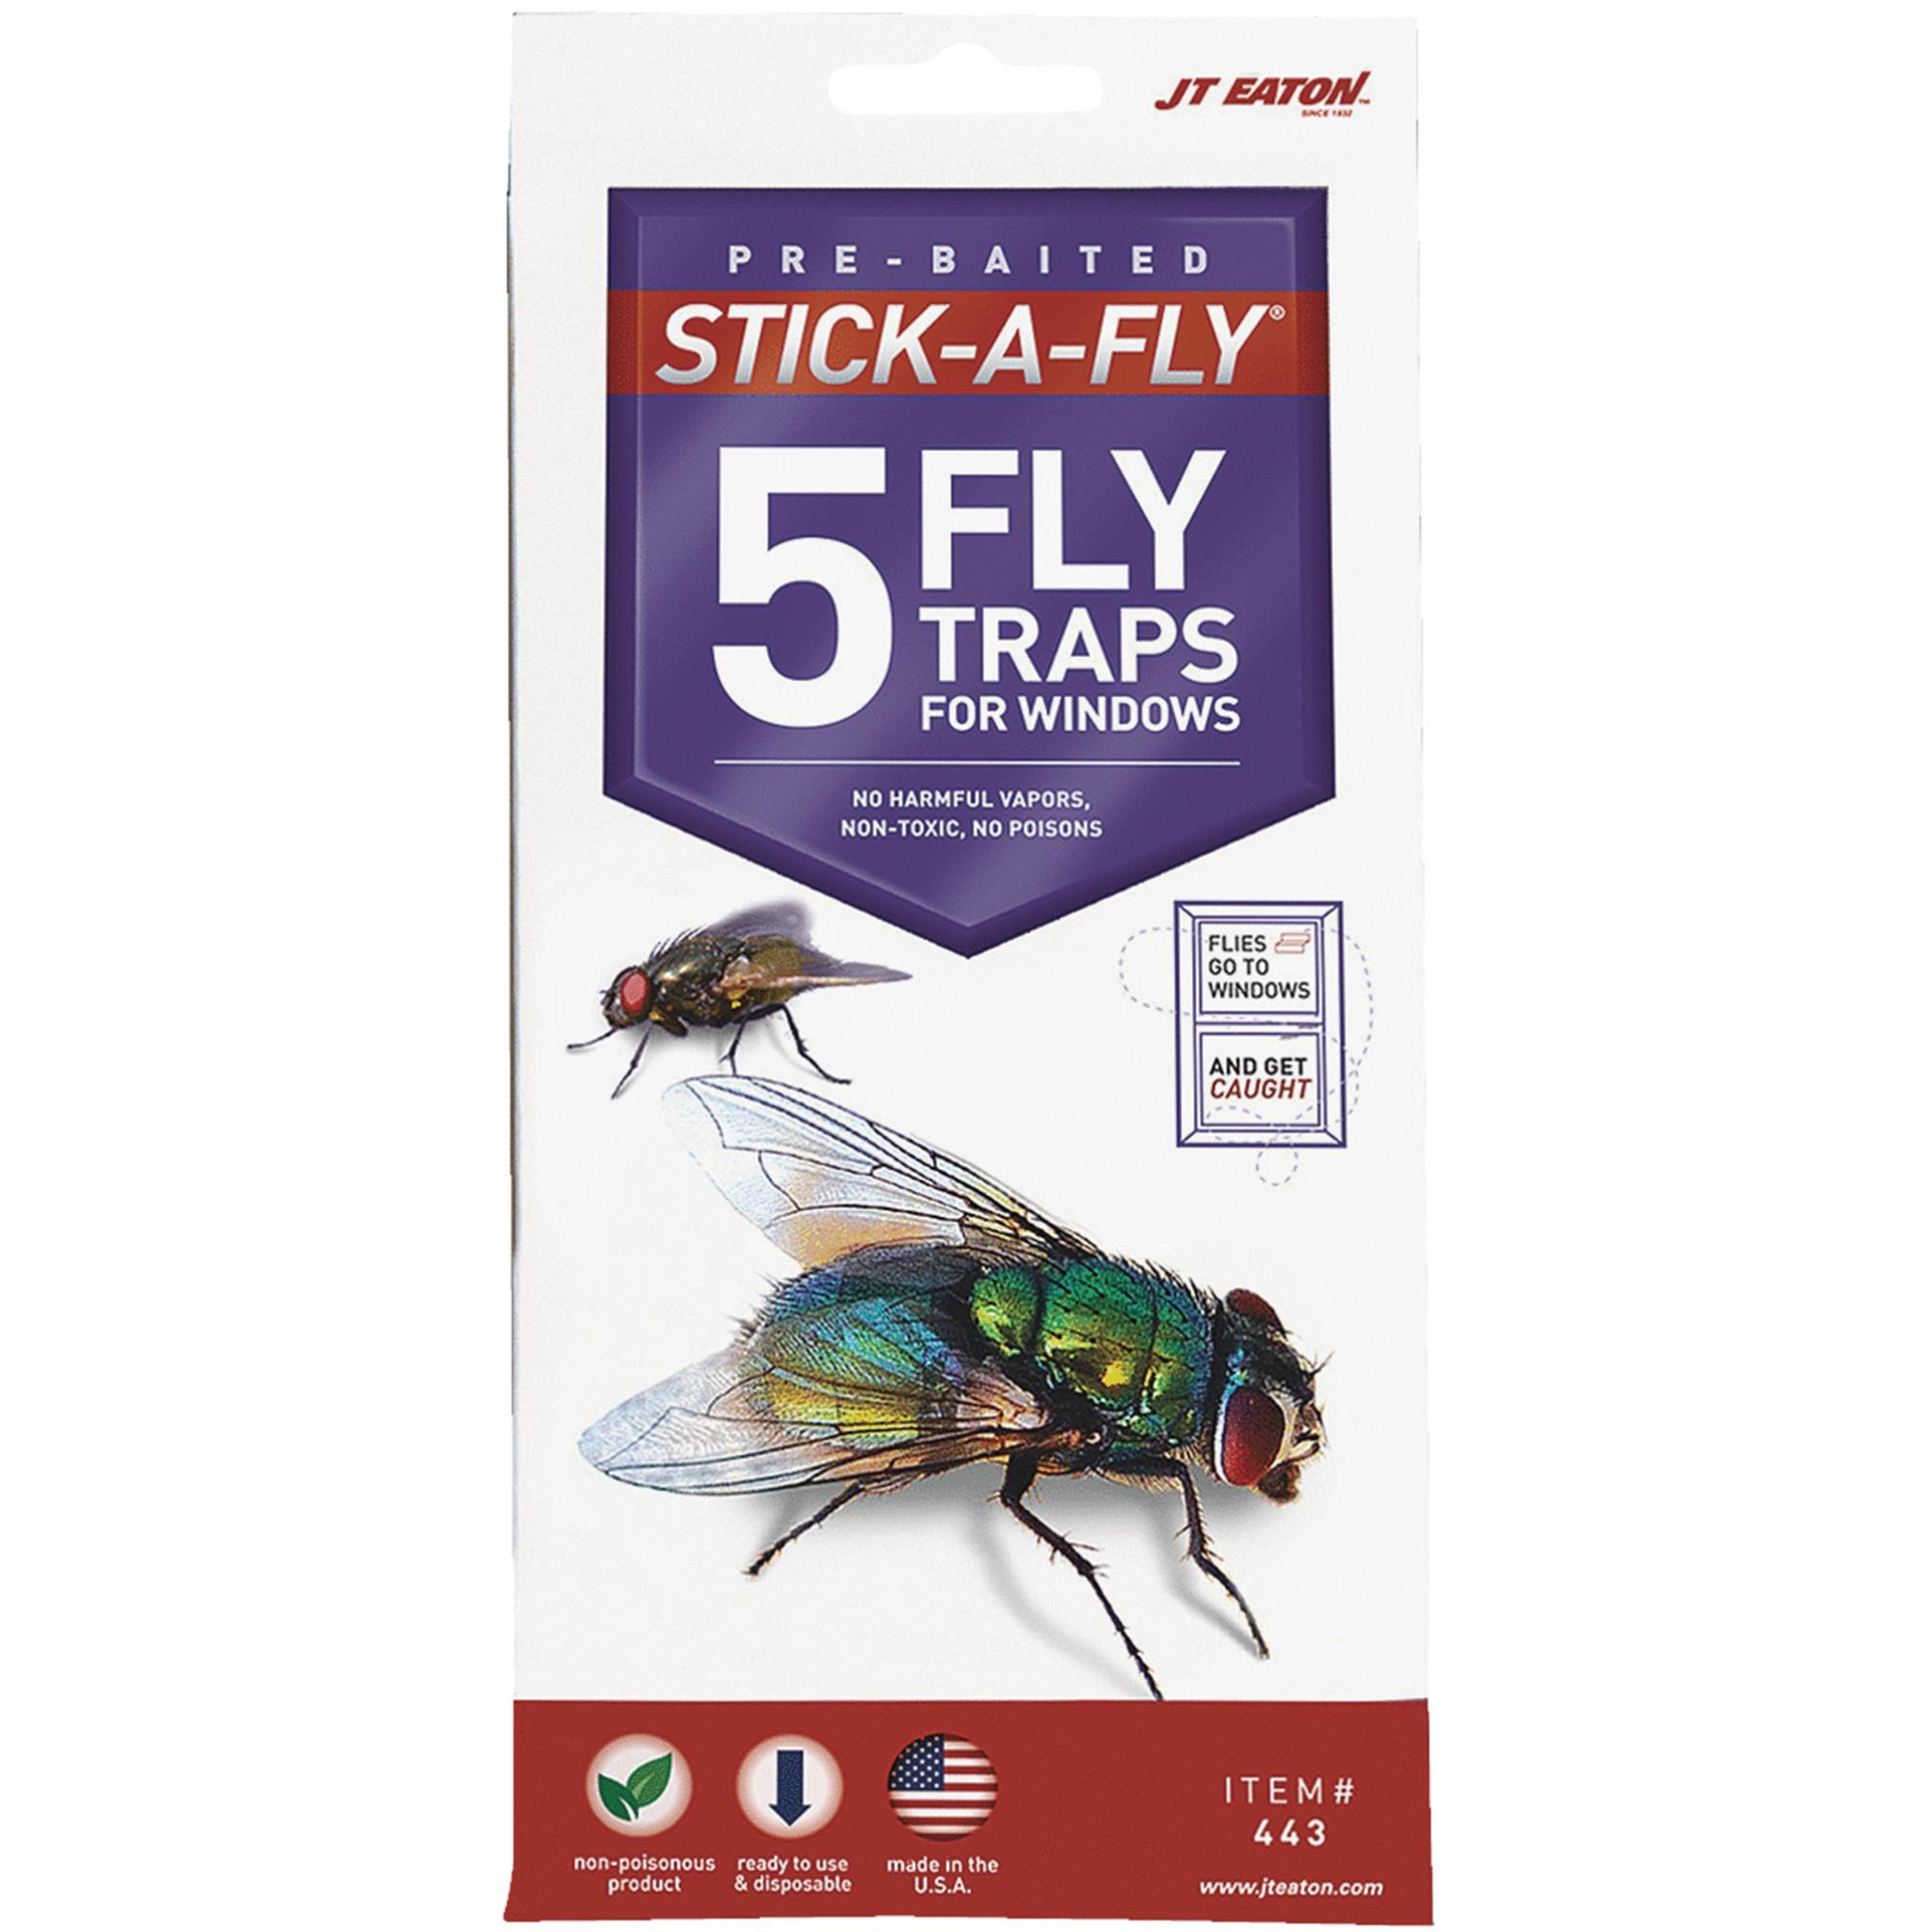 JT Eaton Stick-A-Fly Fly Trap For Windows